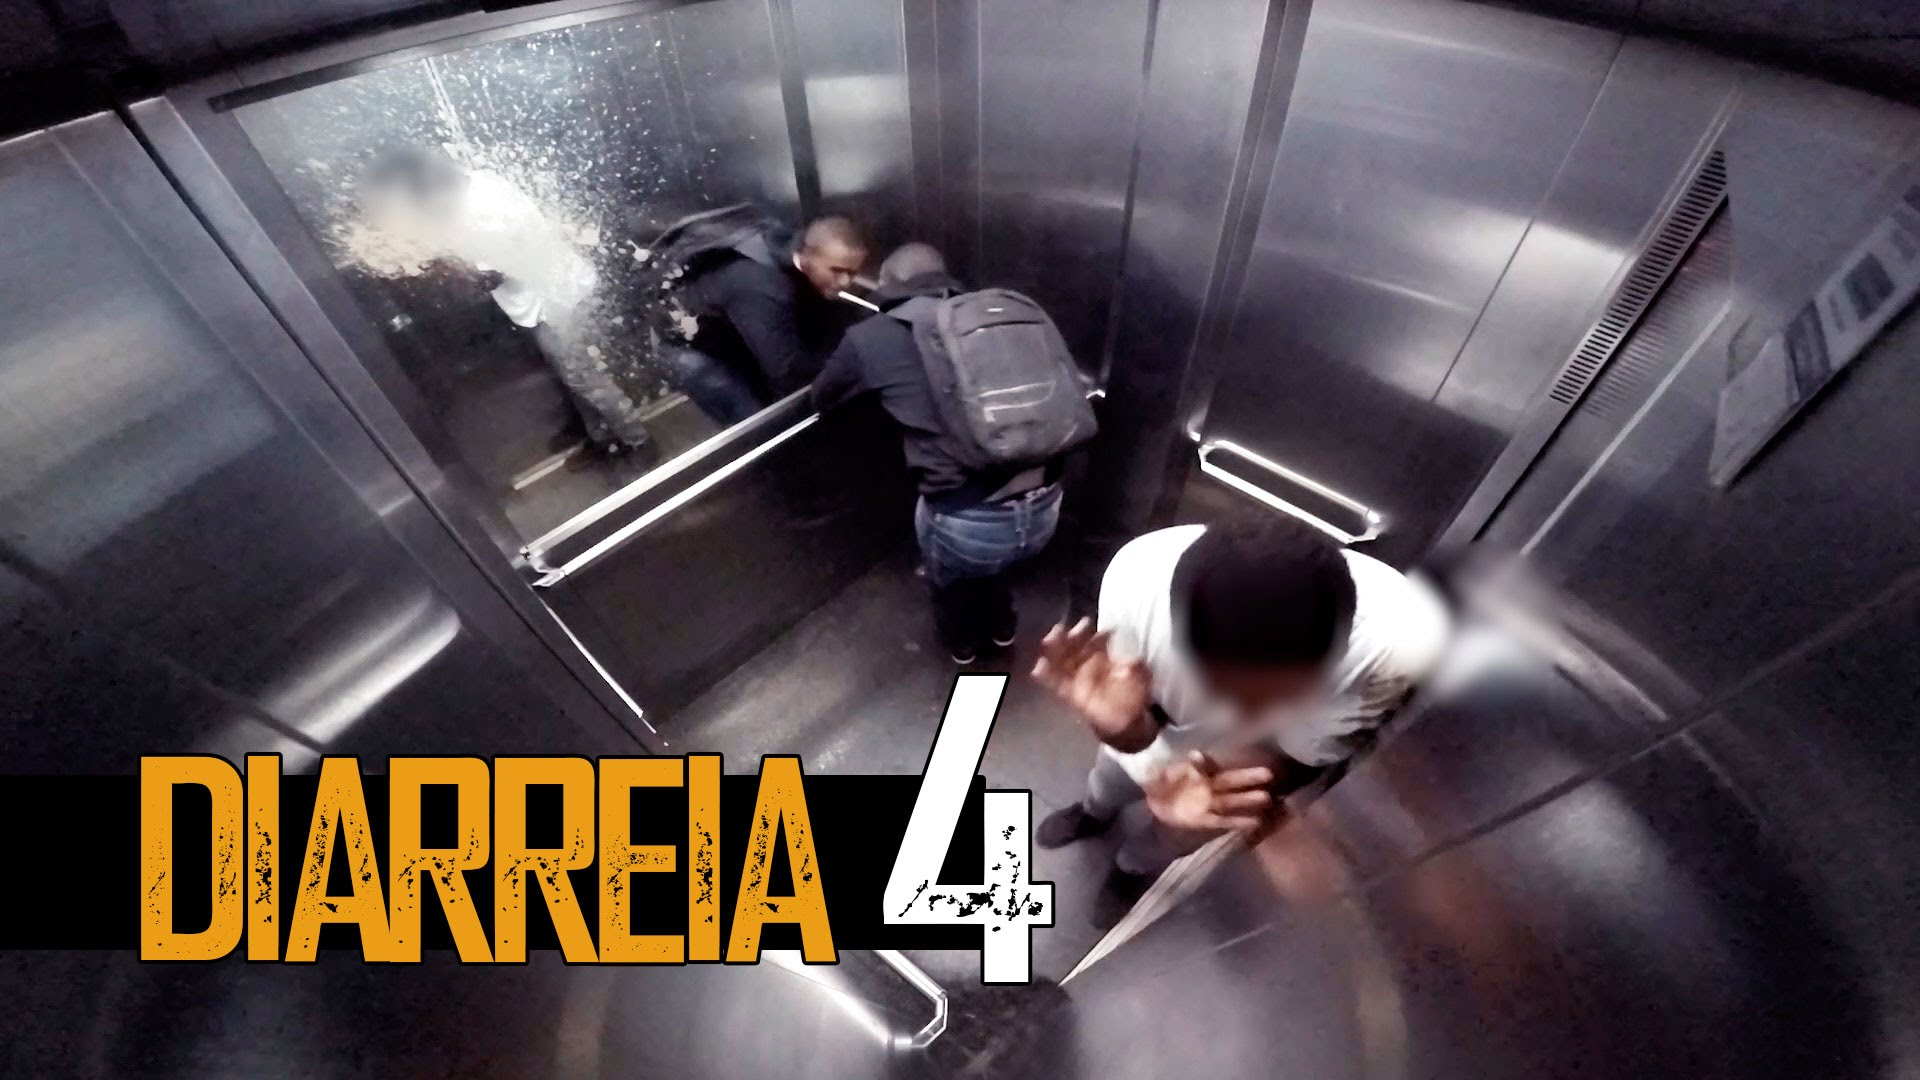 Diarrhea in the elevator